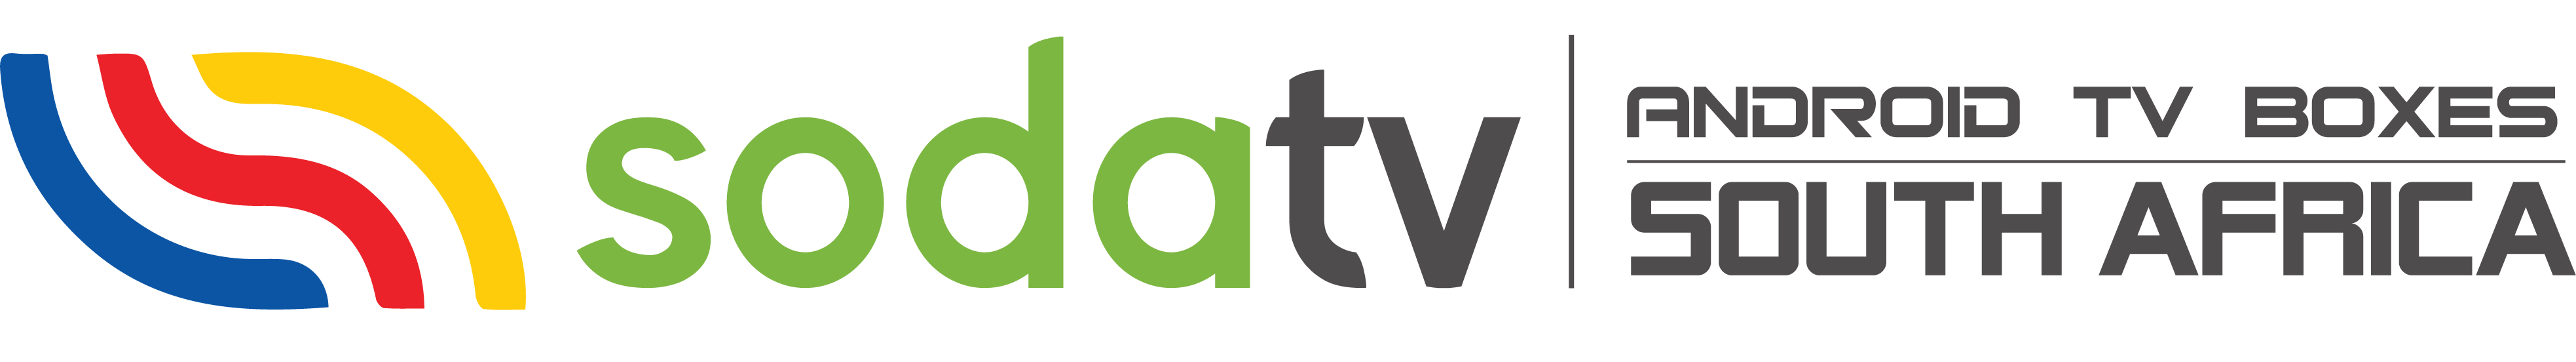 Android TV Boxes South Africa Logo